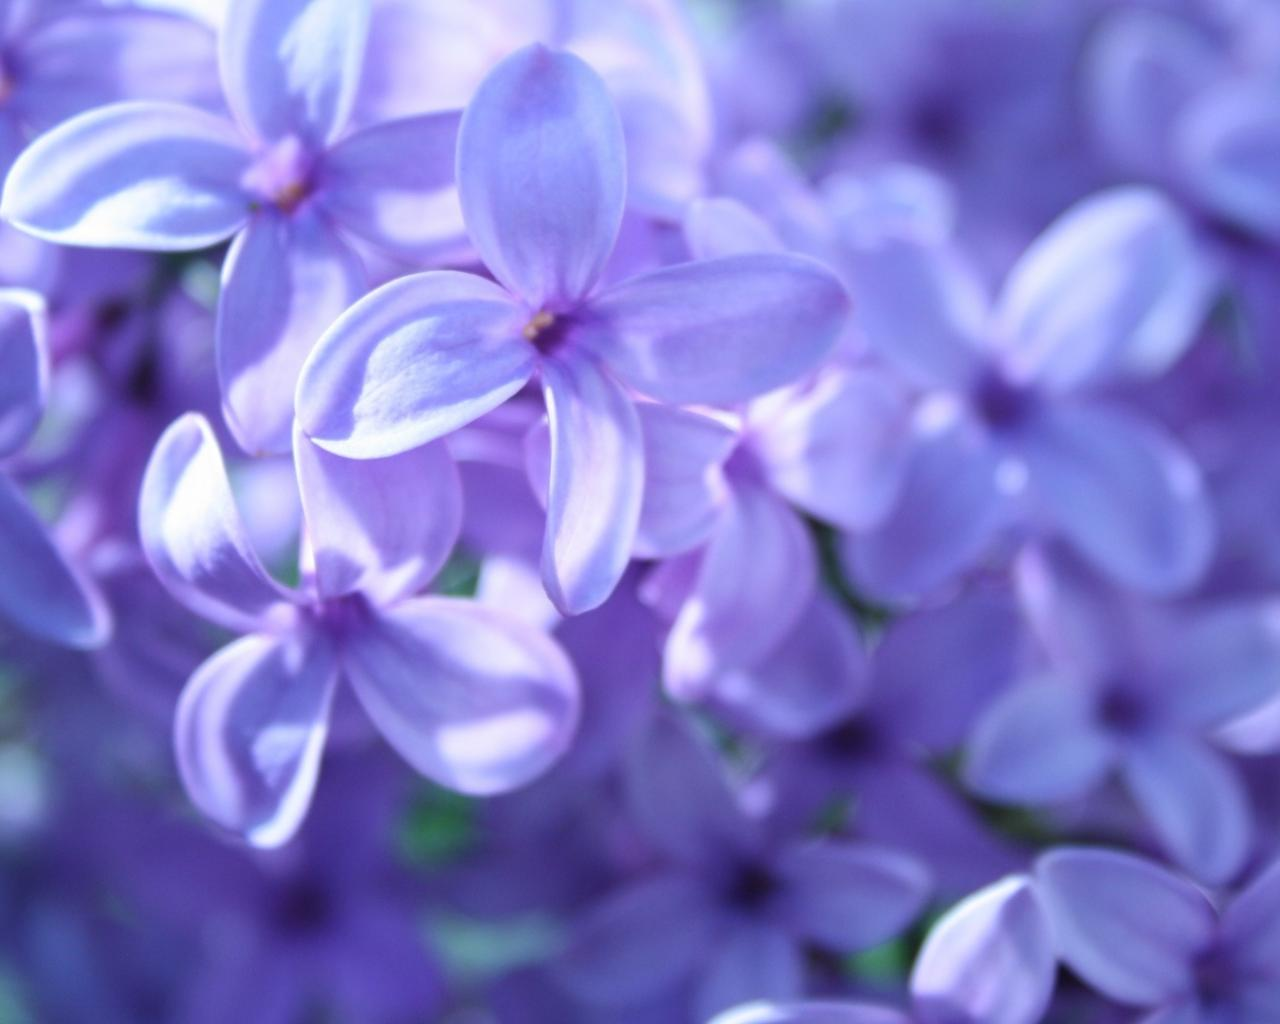 hq-wallpapers_ru_flowers_45330_1280x1024.jpg